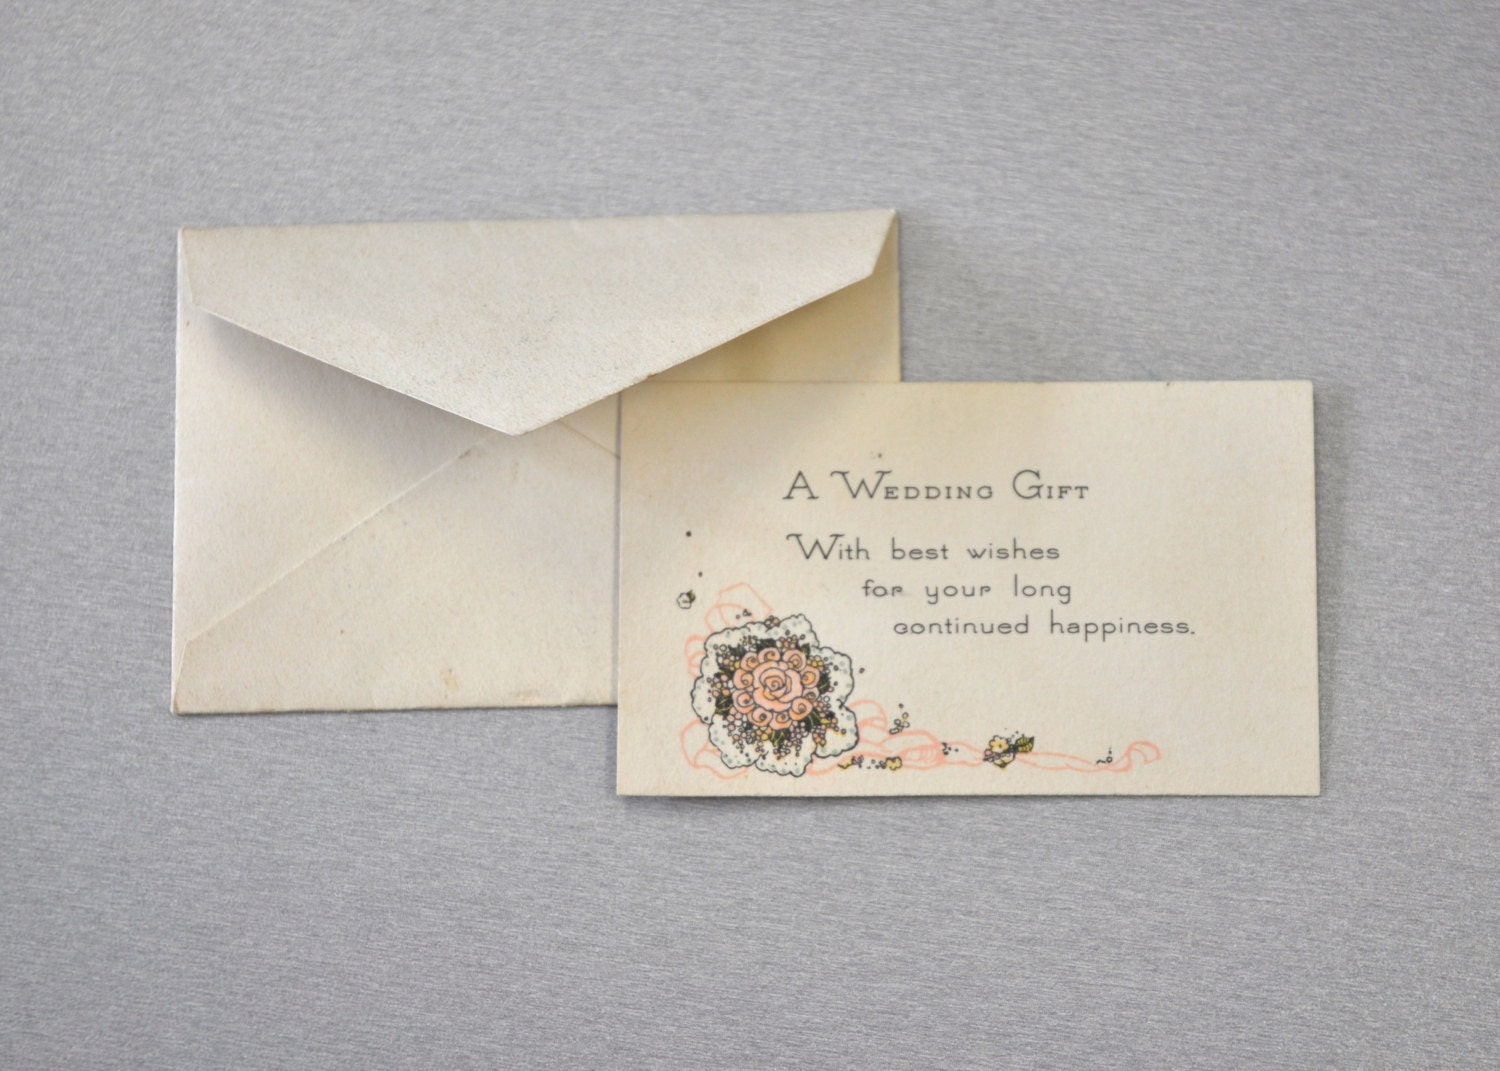 Retro Wedding Gifts: Tiny Vintage Wedding Gift Card With Envelope